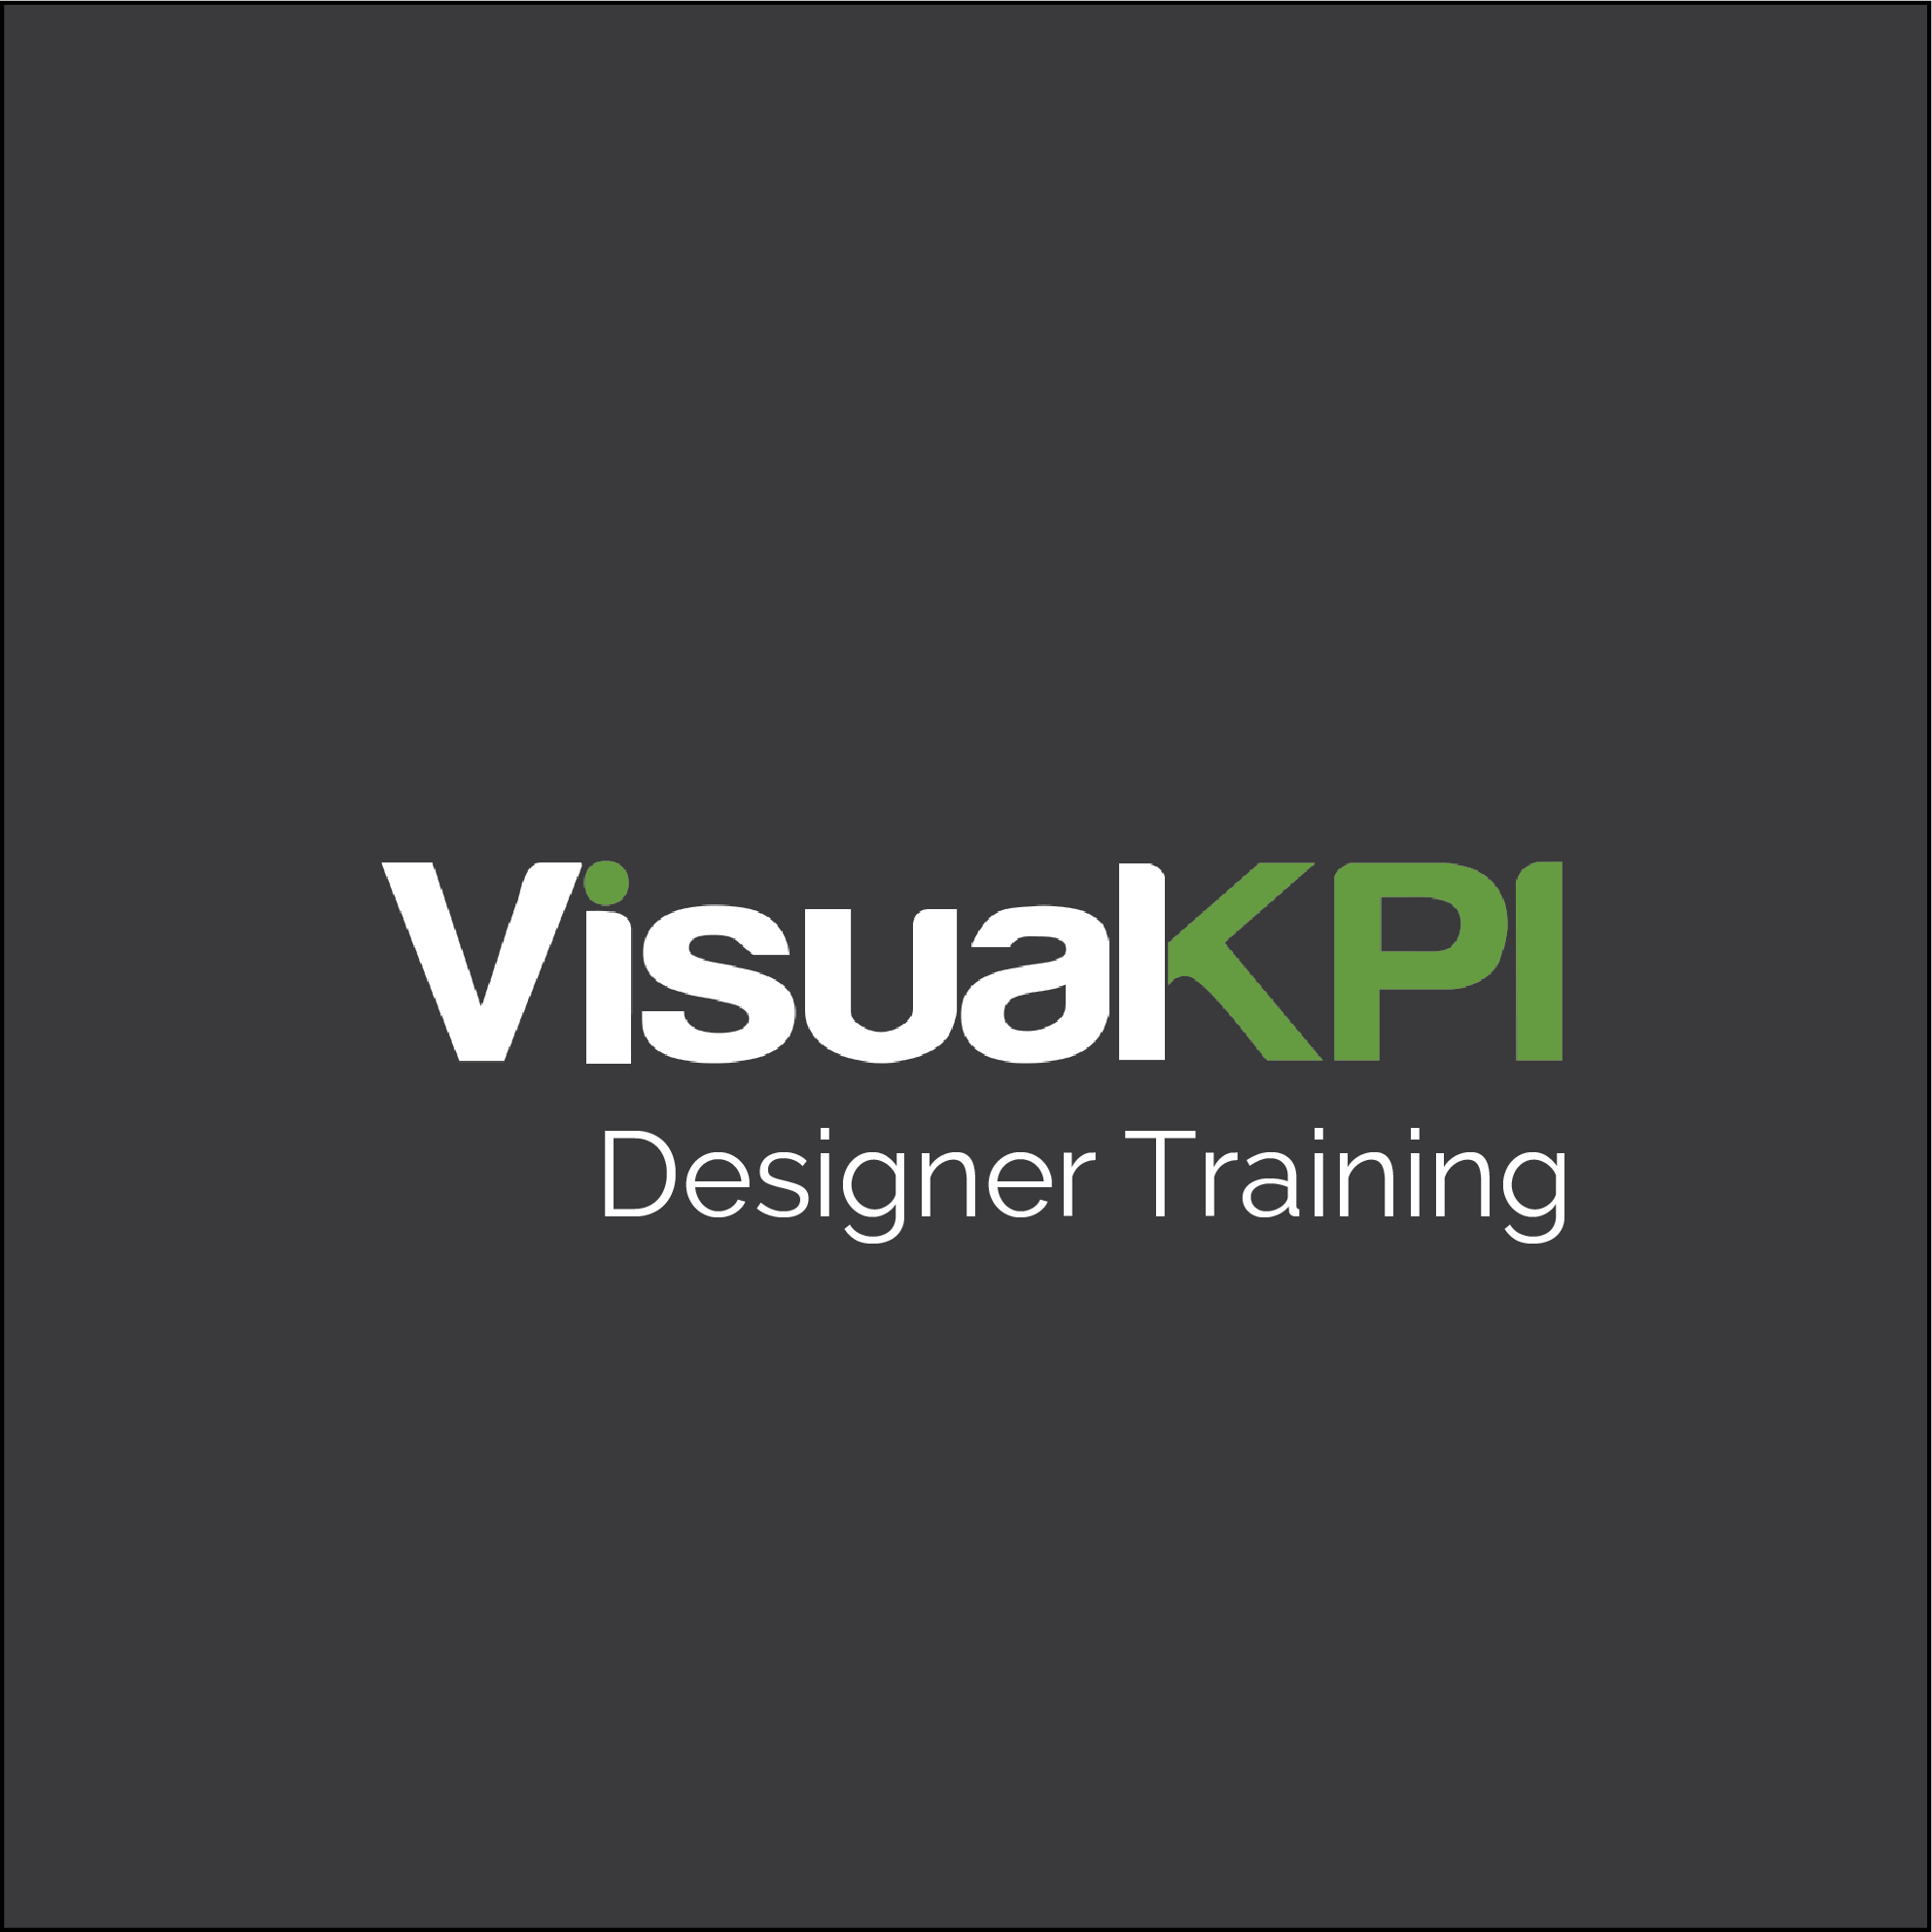 Visual KPI Designer Training